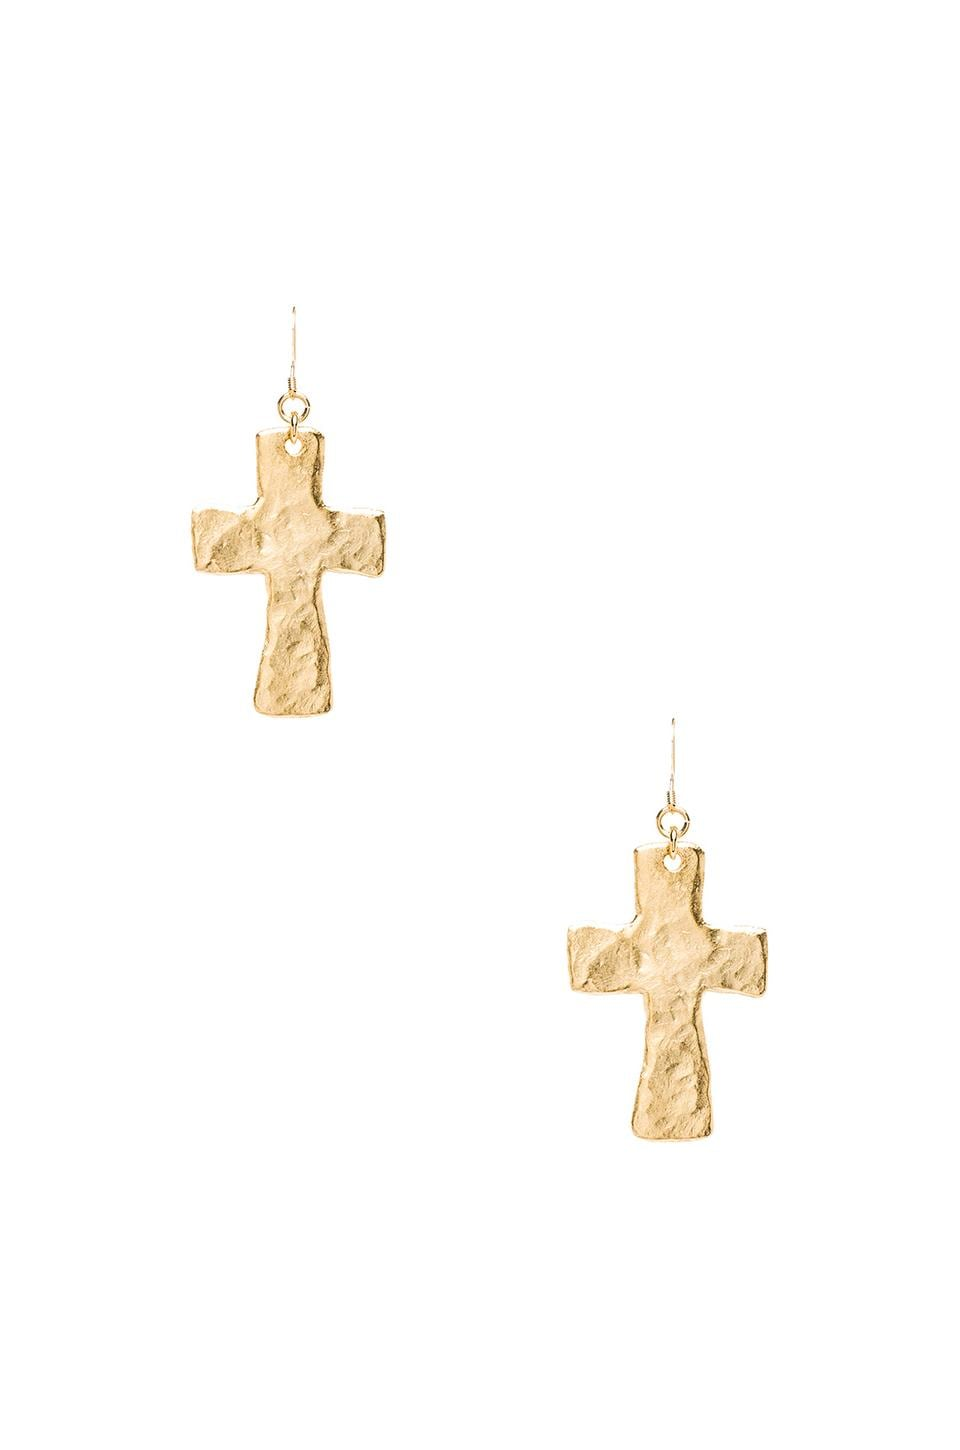 Kenneth Jay Lane Satin Gold Cross Fishhook Earrings in Satin Gold